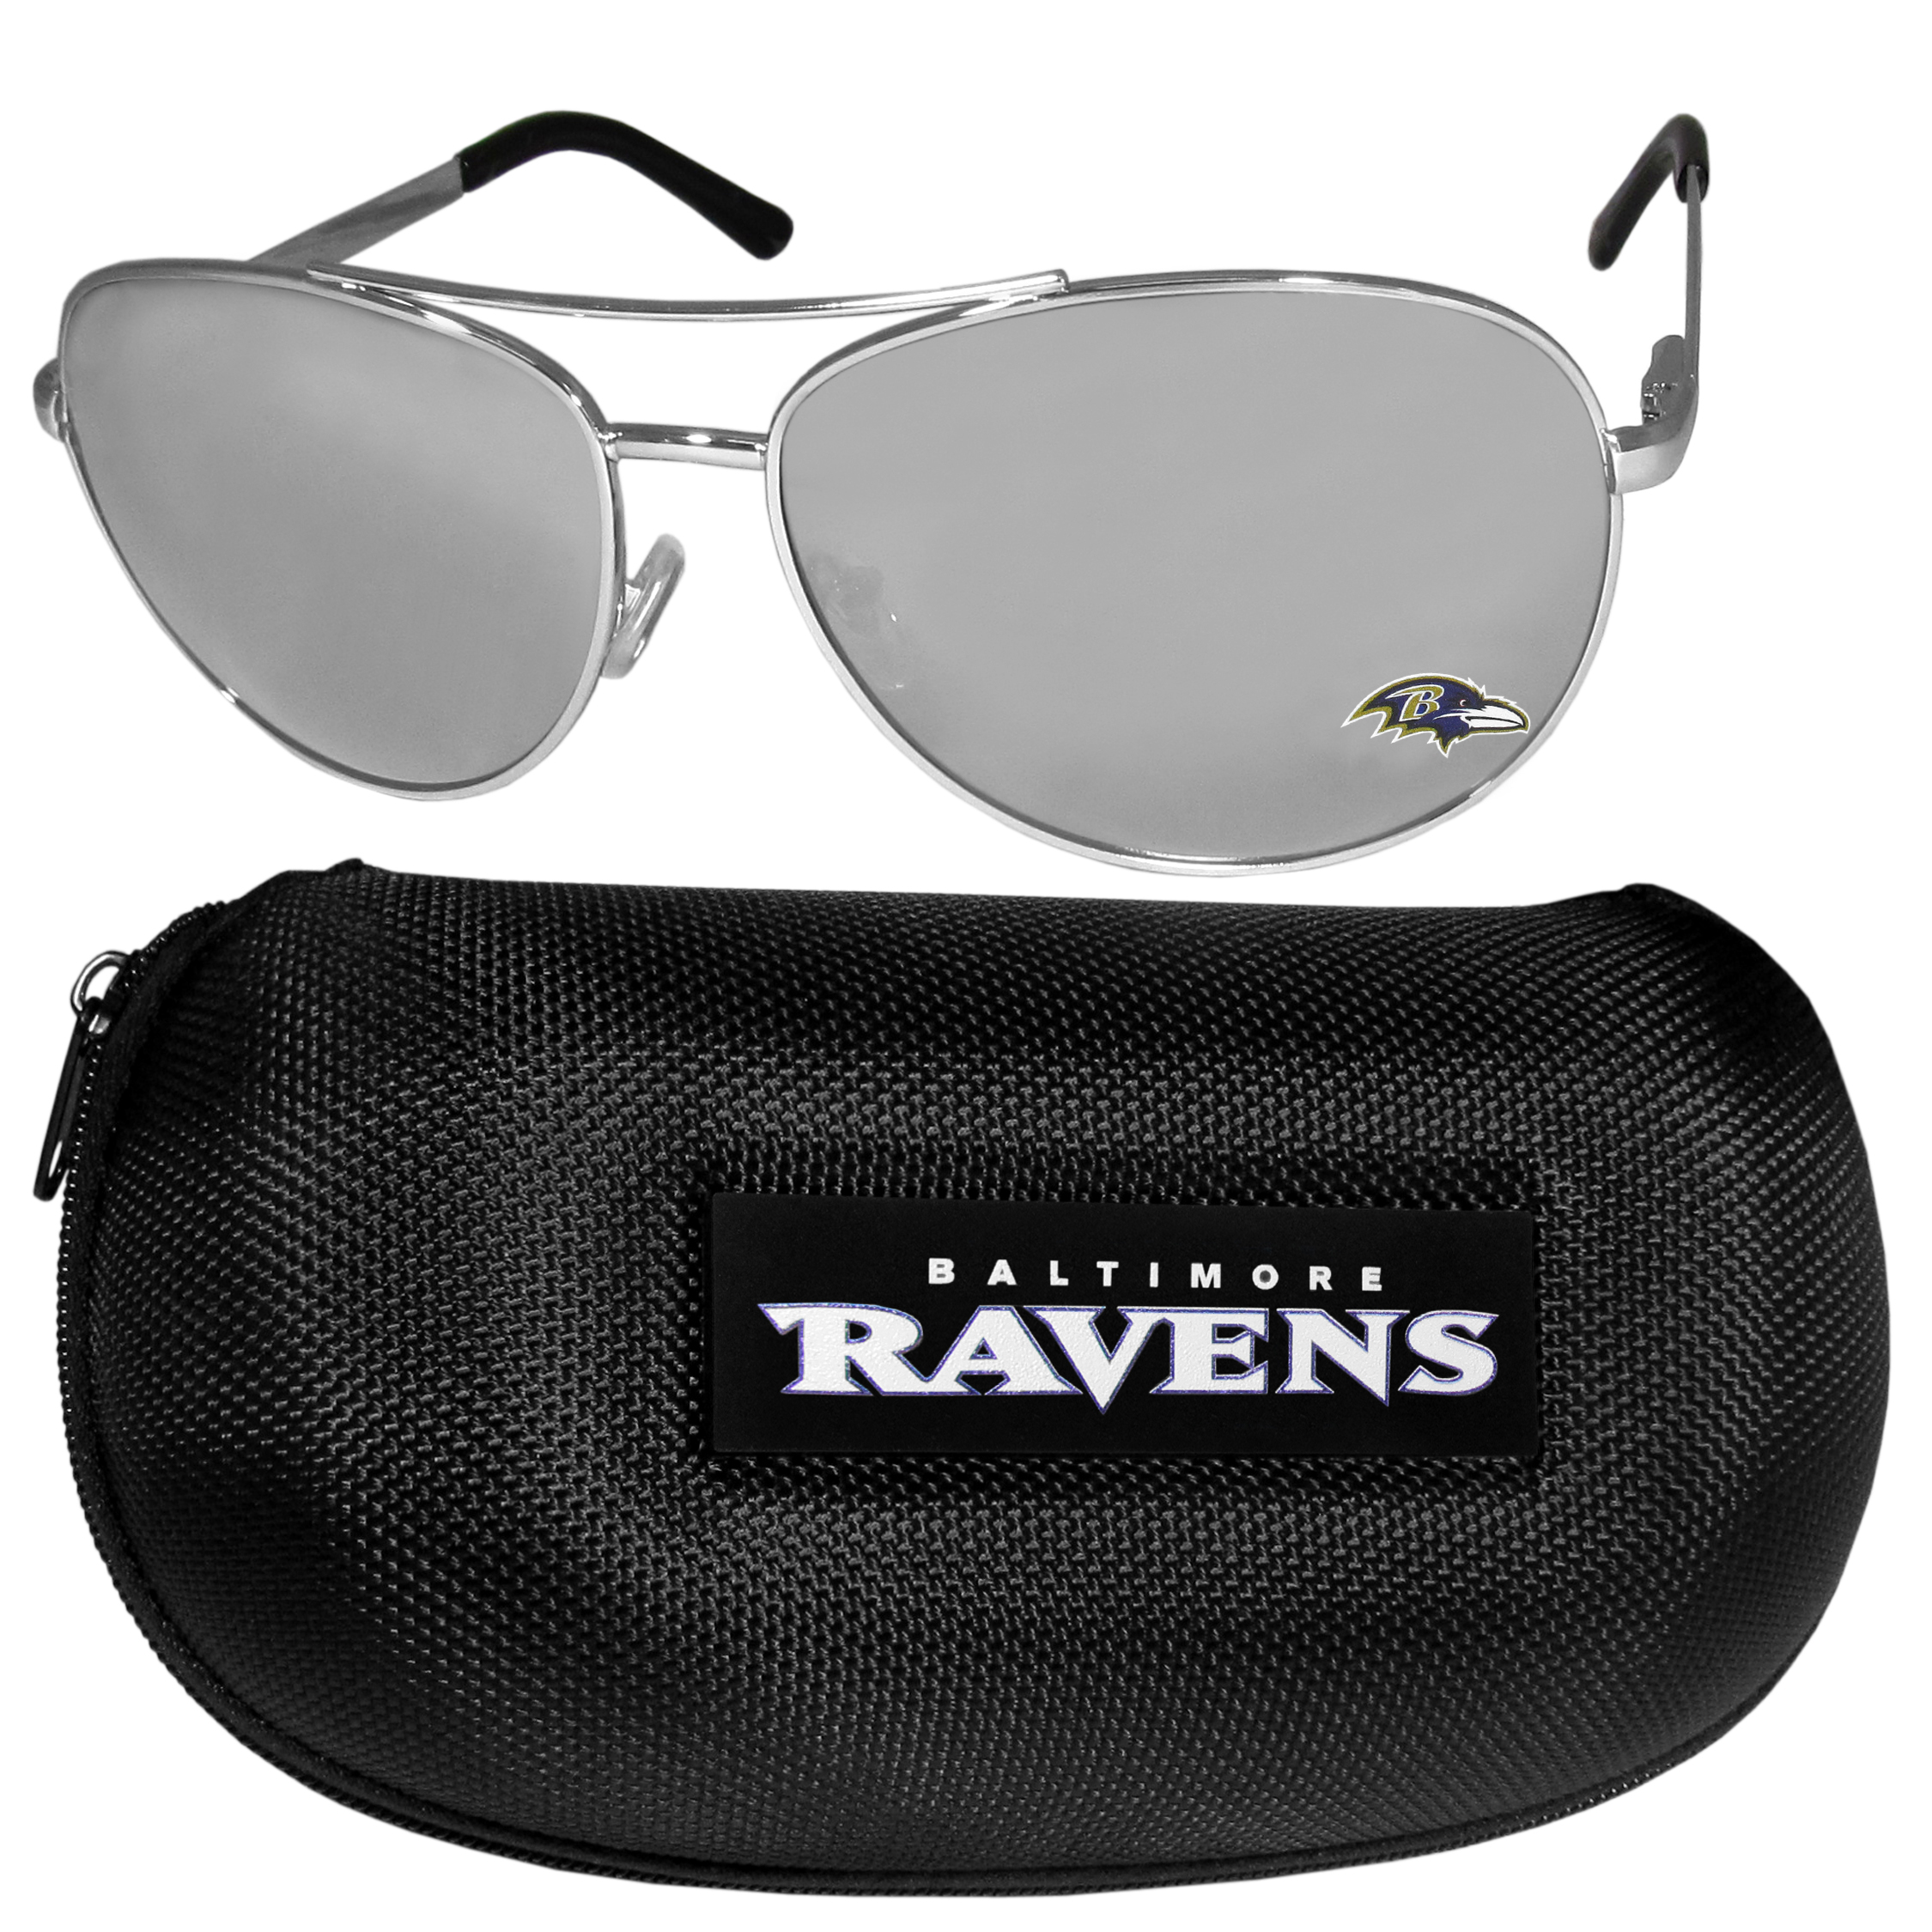 Baltimore Ravens Aviator Sunglasses and Zippered Carrying Case - Aviator sunglasses are truly an iconic retro fashion statement that never goes out-of-style. Our Baltimore Ravens  aviator sunglasses pair this classic look with your love of the game. The iridium coated lenses reduce glare while driving, boating, golfing and their 100% UVA/UVB rating provides you with the maximum UV protection for all your outdoor activities. A millennial favorite, these affordable designer frames are the perfect eyewear accessory for a sports fan that is looking for high-quality at an affordable price. The durable, flex hinged frames are tough enough for hiking and camping or if you prefer sun bathing by the pool or on the beach these shades will really stand the test of time. The sunglasses come with a hard shell zippered case which has a large team logo on the lid that will make even the most die-hard fan proud!